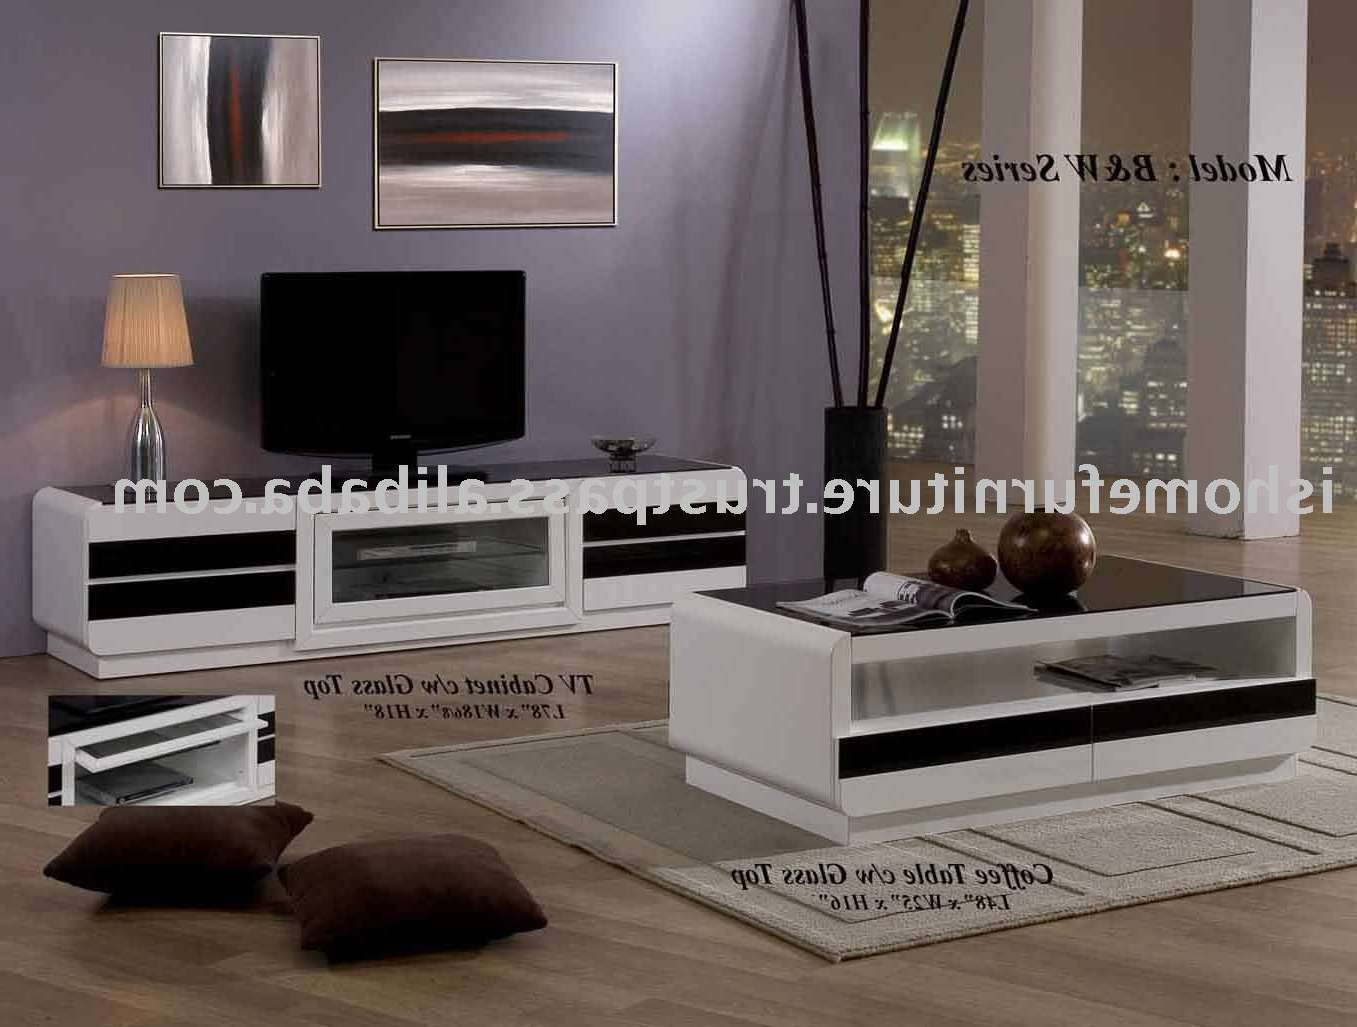 B&w Series – Coffee Table,tv Stand – Buy Home Furniture,coffee With Regard To Coffee Tables And Tv Stands (View 2 of 20)